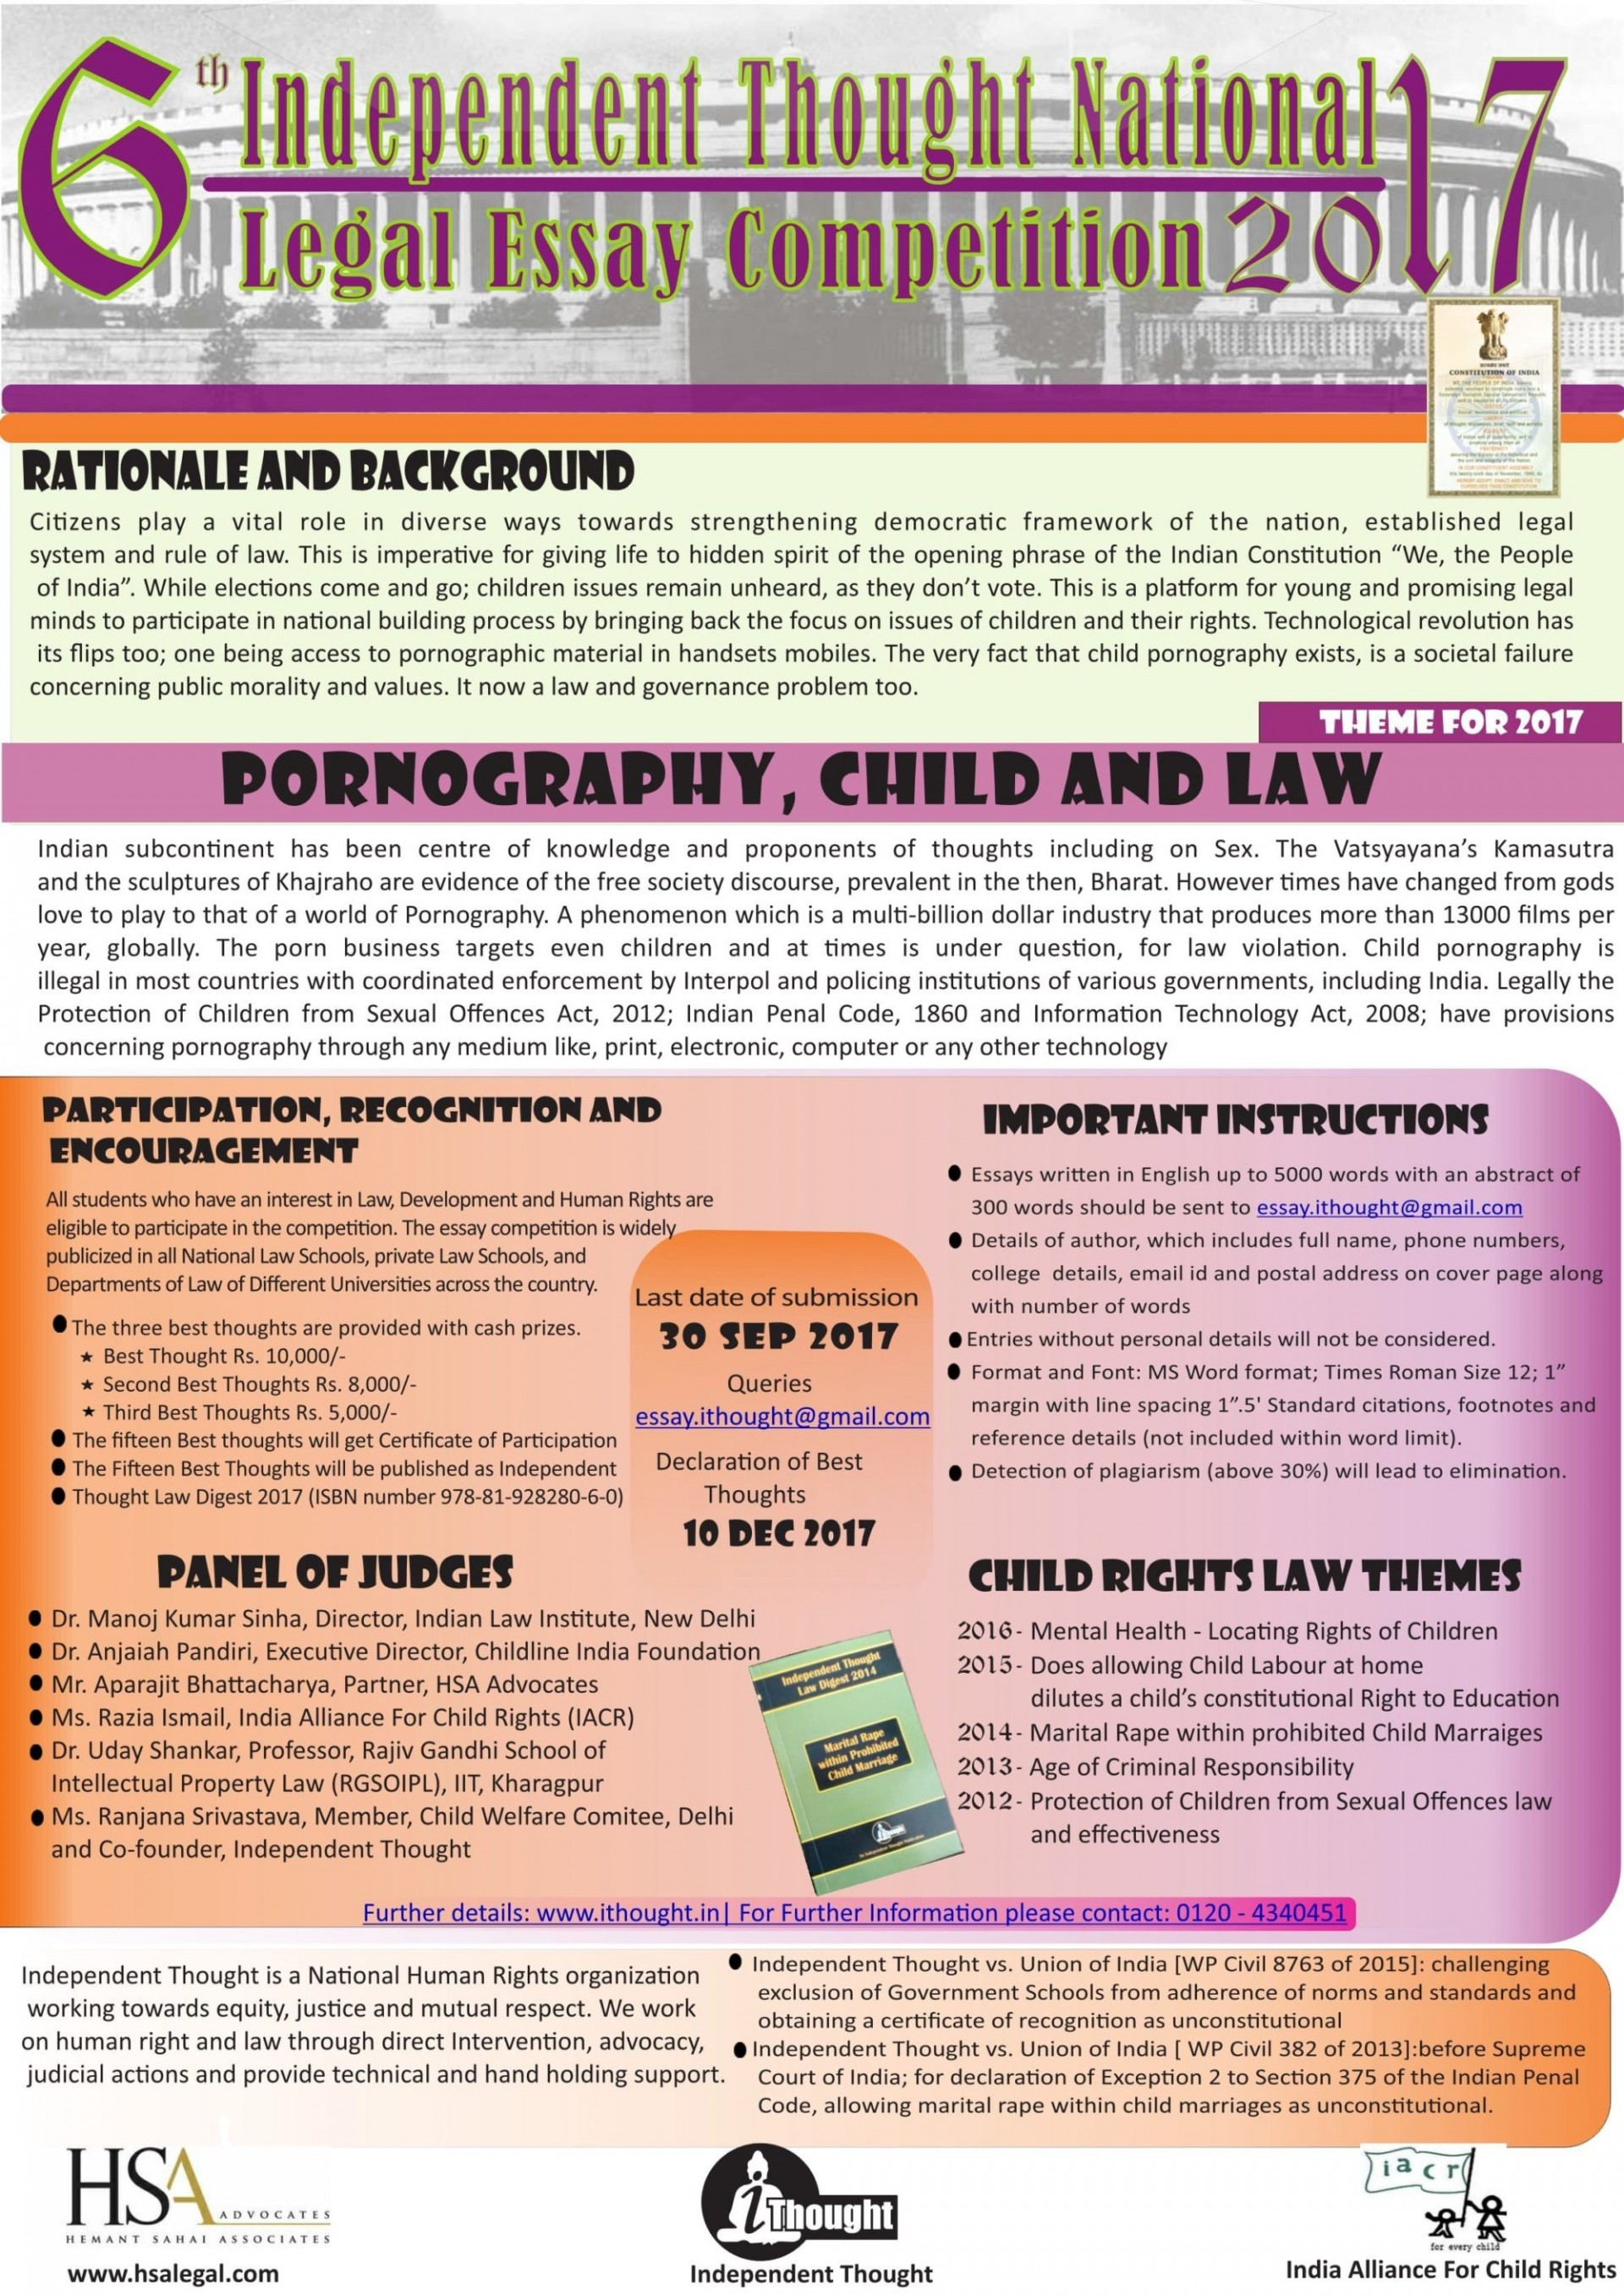 019 Age Of Responsibility Essay Example Poster 6itnlec2017 Final 4july2017 Awful Persuasive Argumentative Criminal 1920